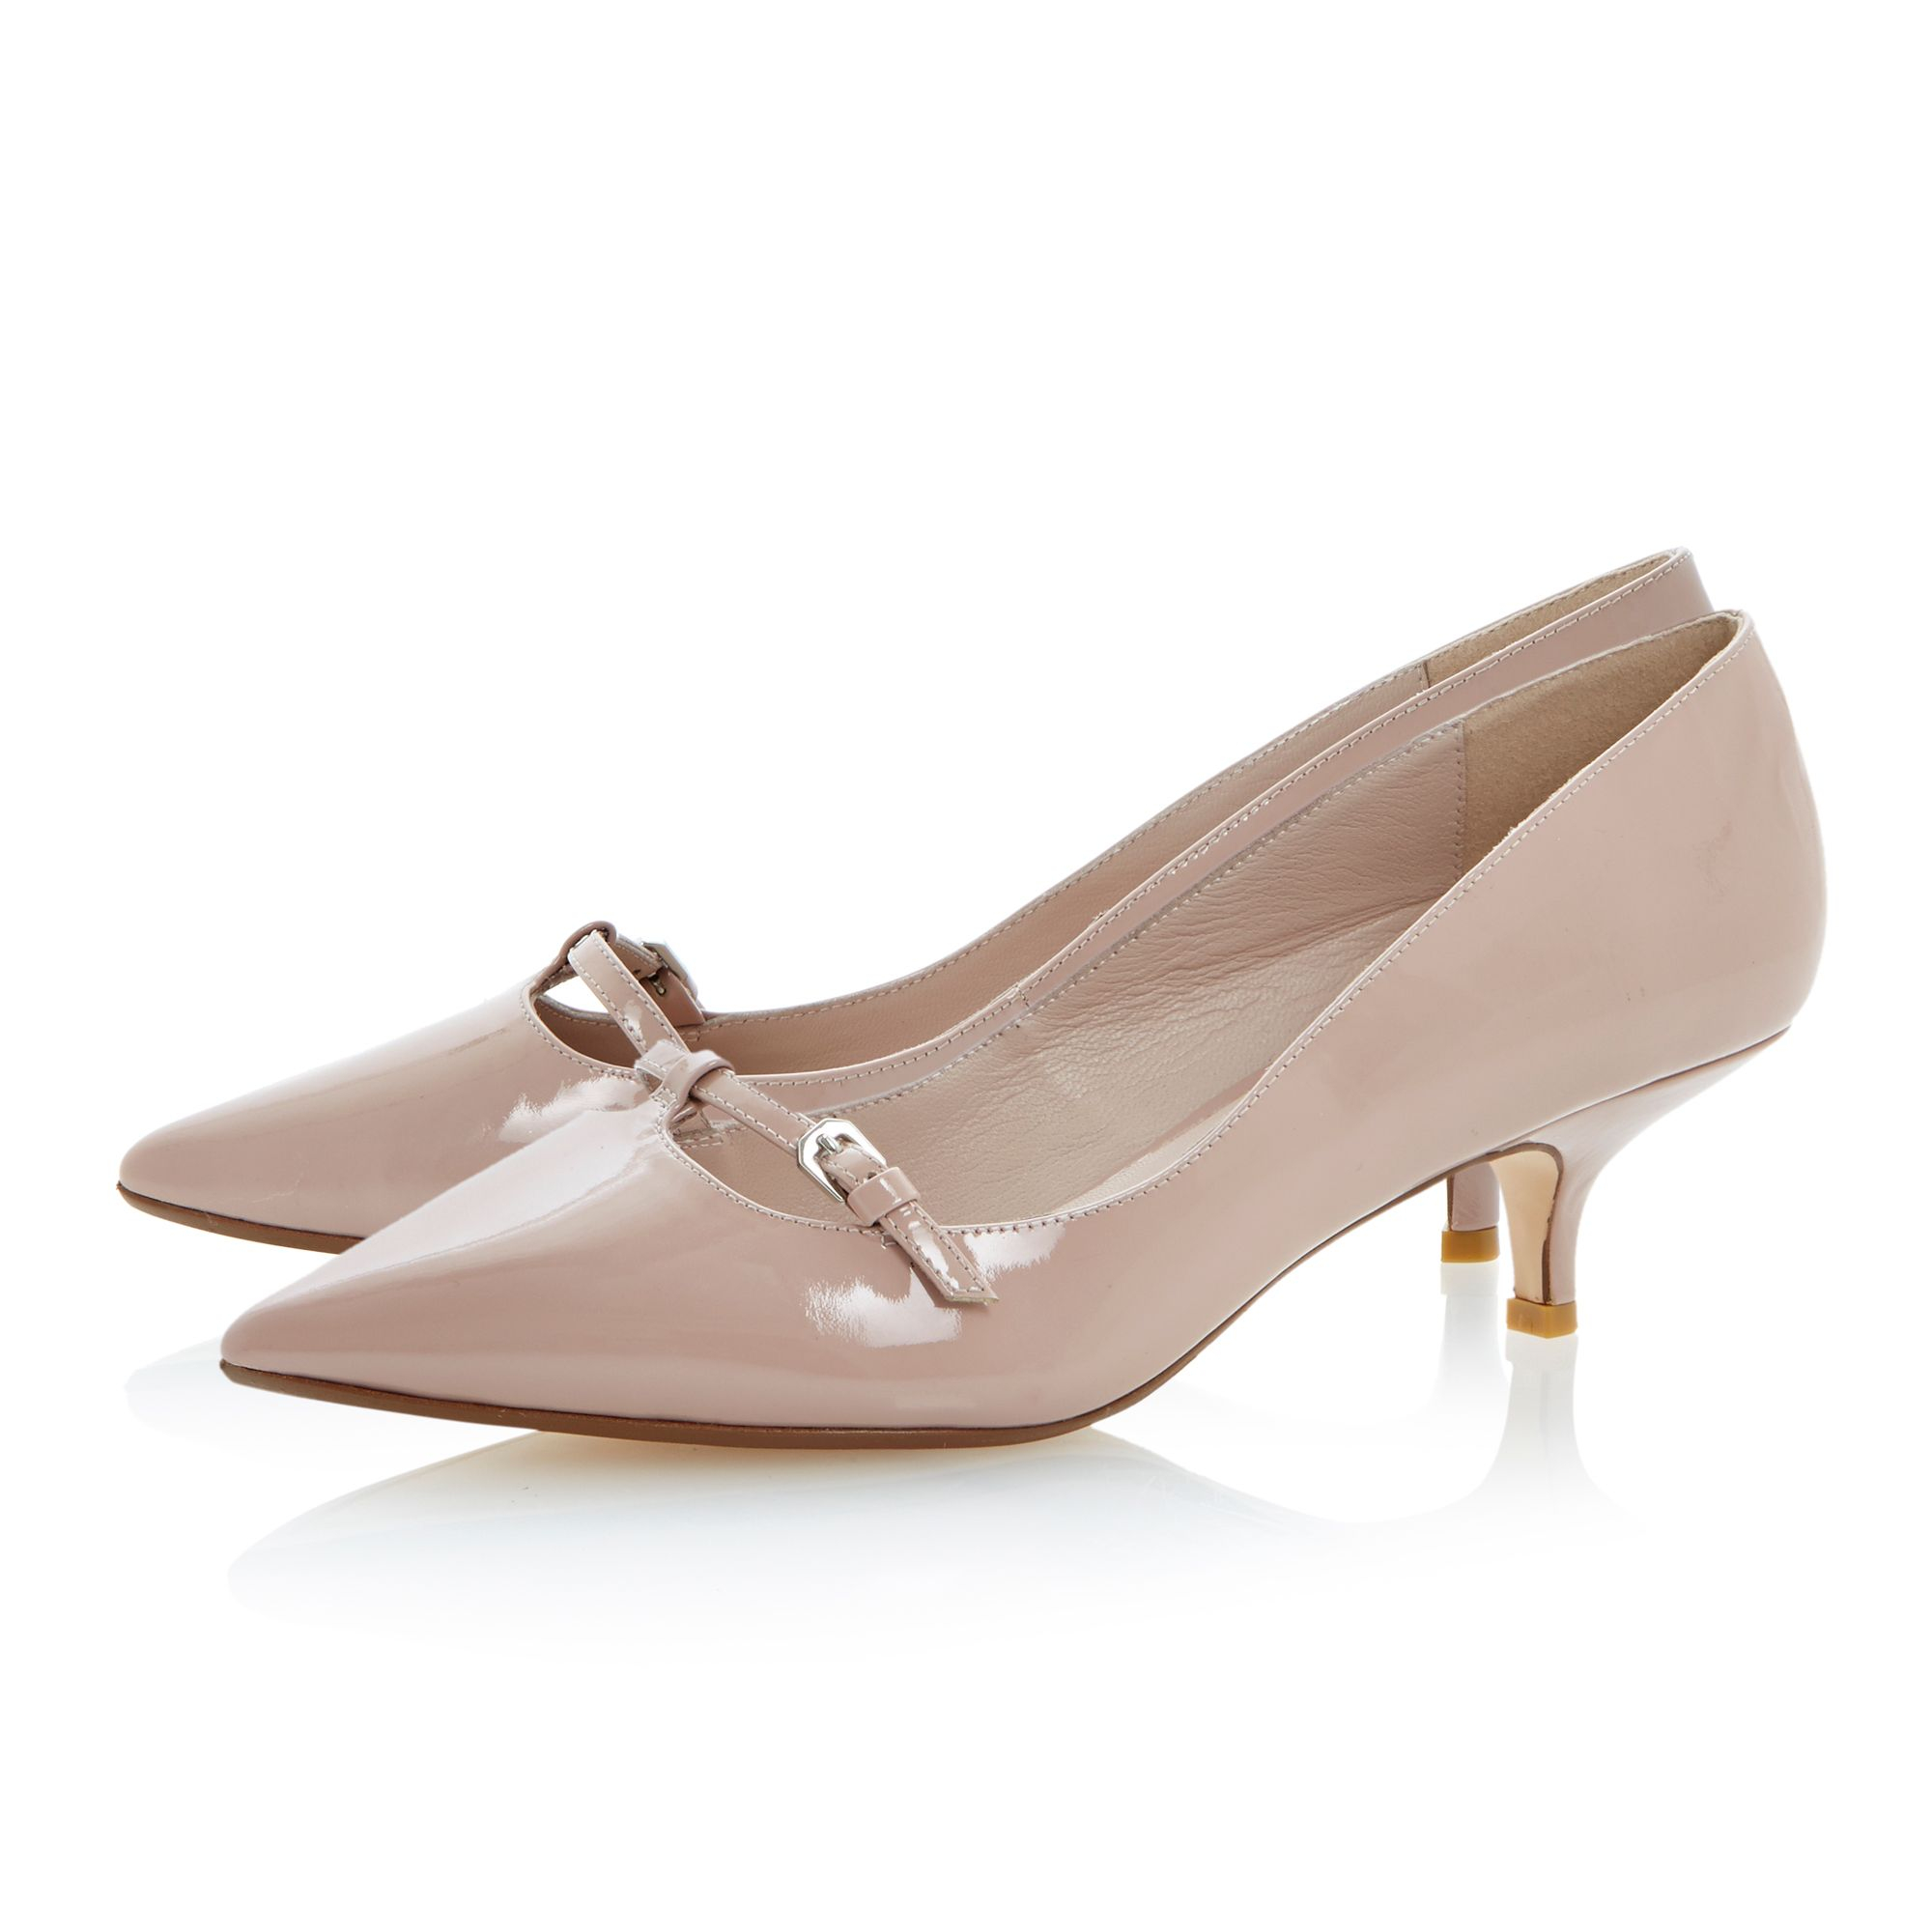 Pointed Toe Kitten Heel Shoes - Is Heel